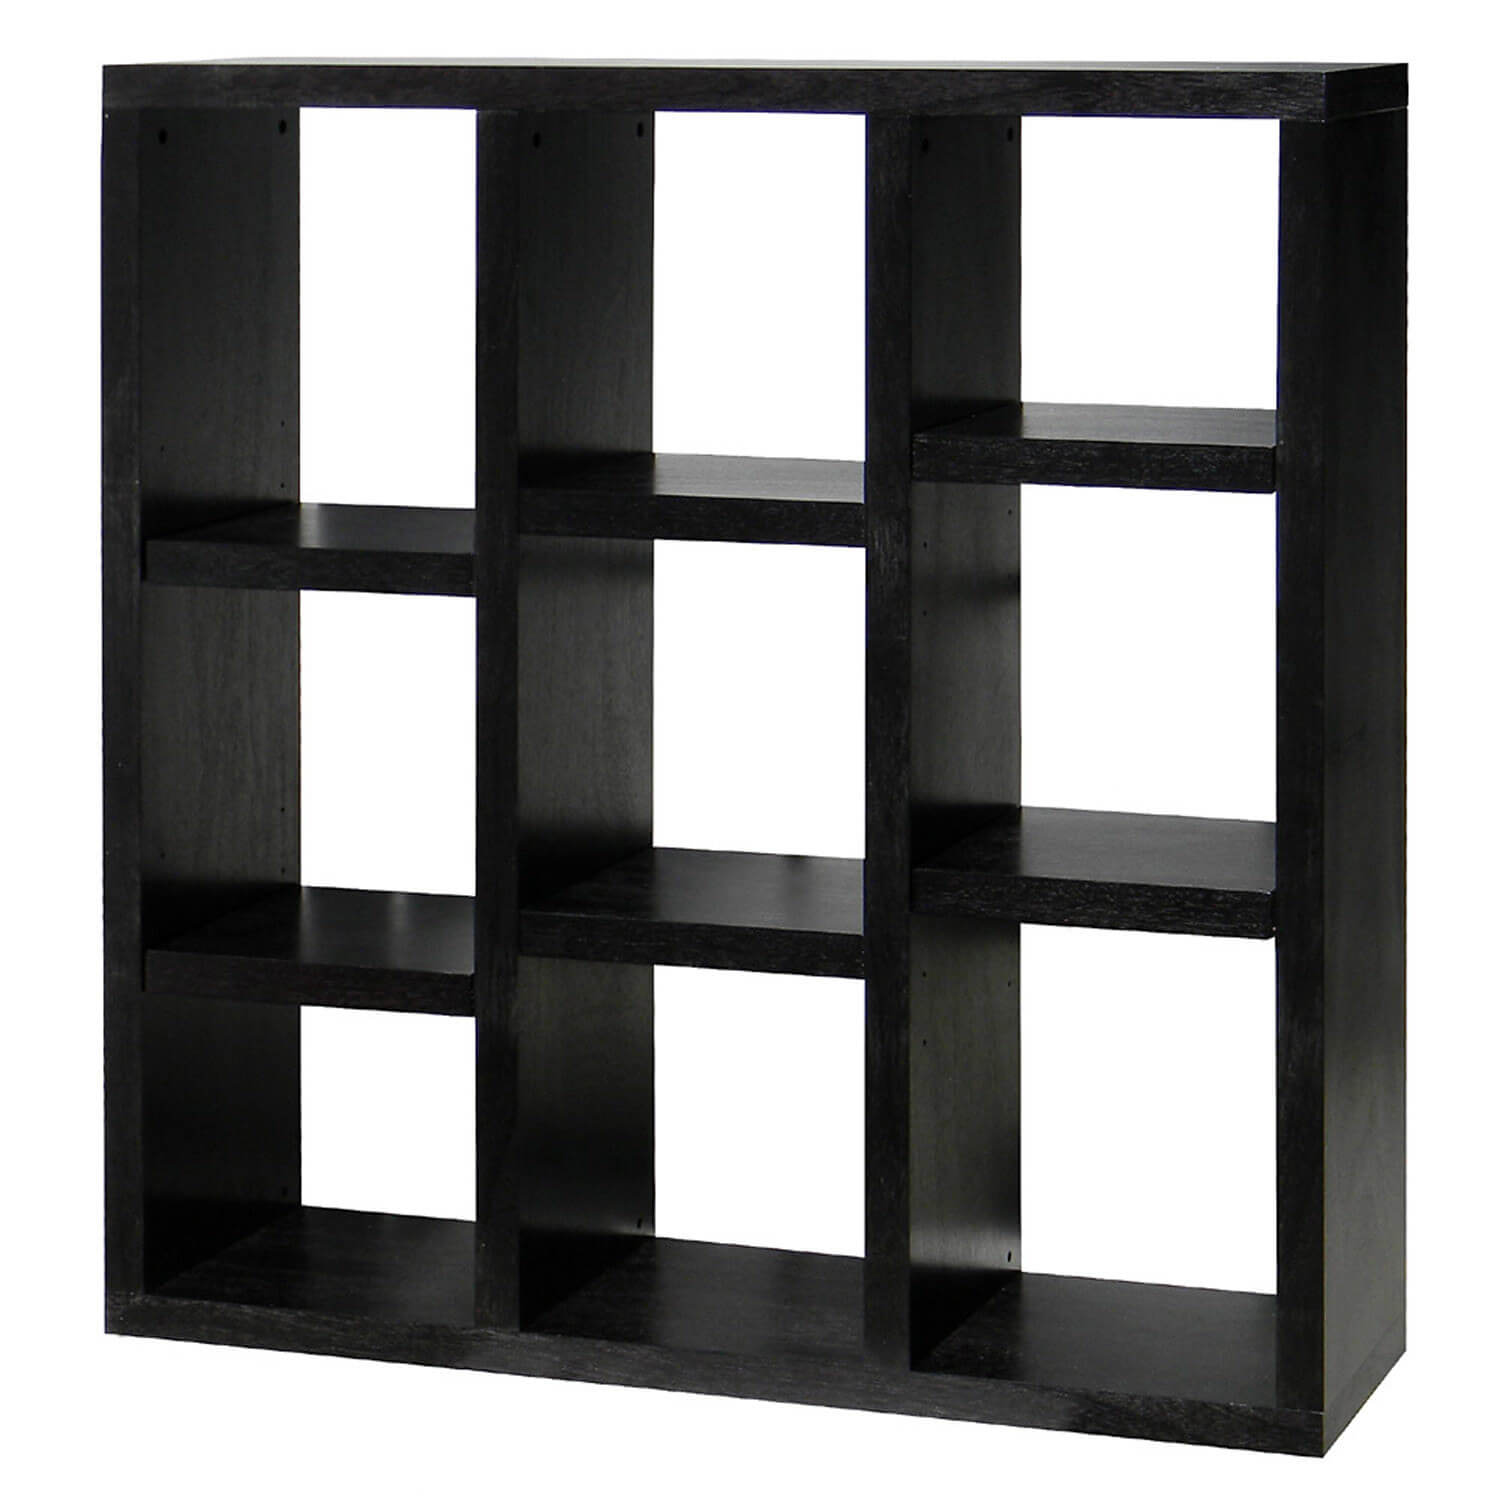 Hereu0027s An Interesting 9 Cube Shelf With A Staircase Style Pattern Achieved  With The Shelves